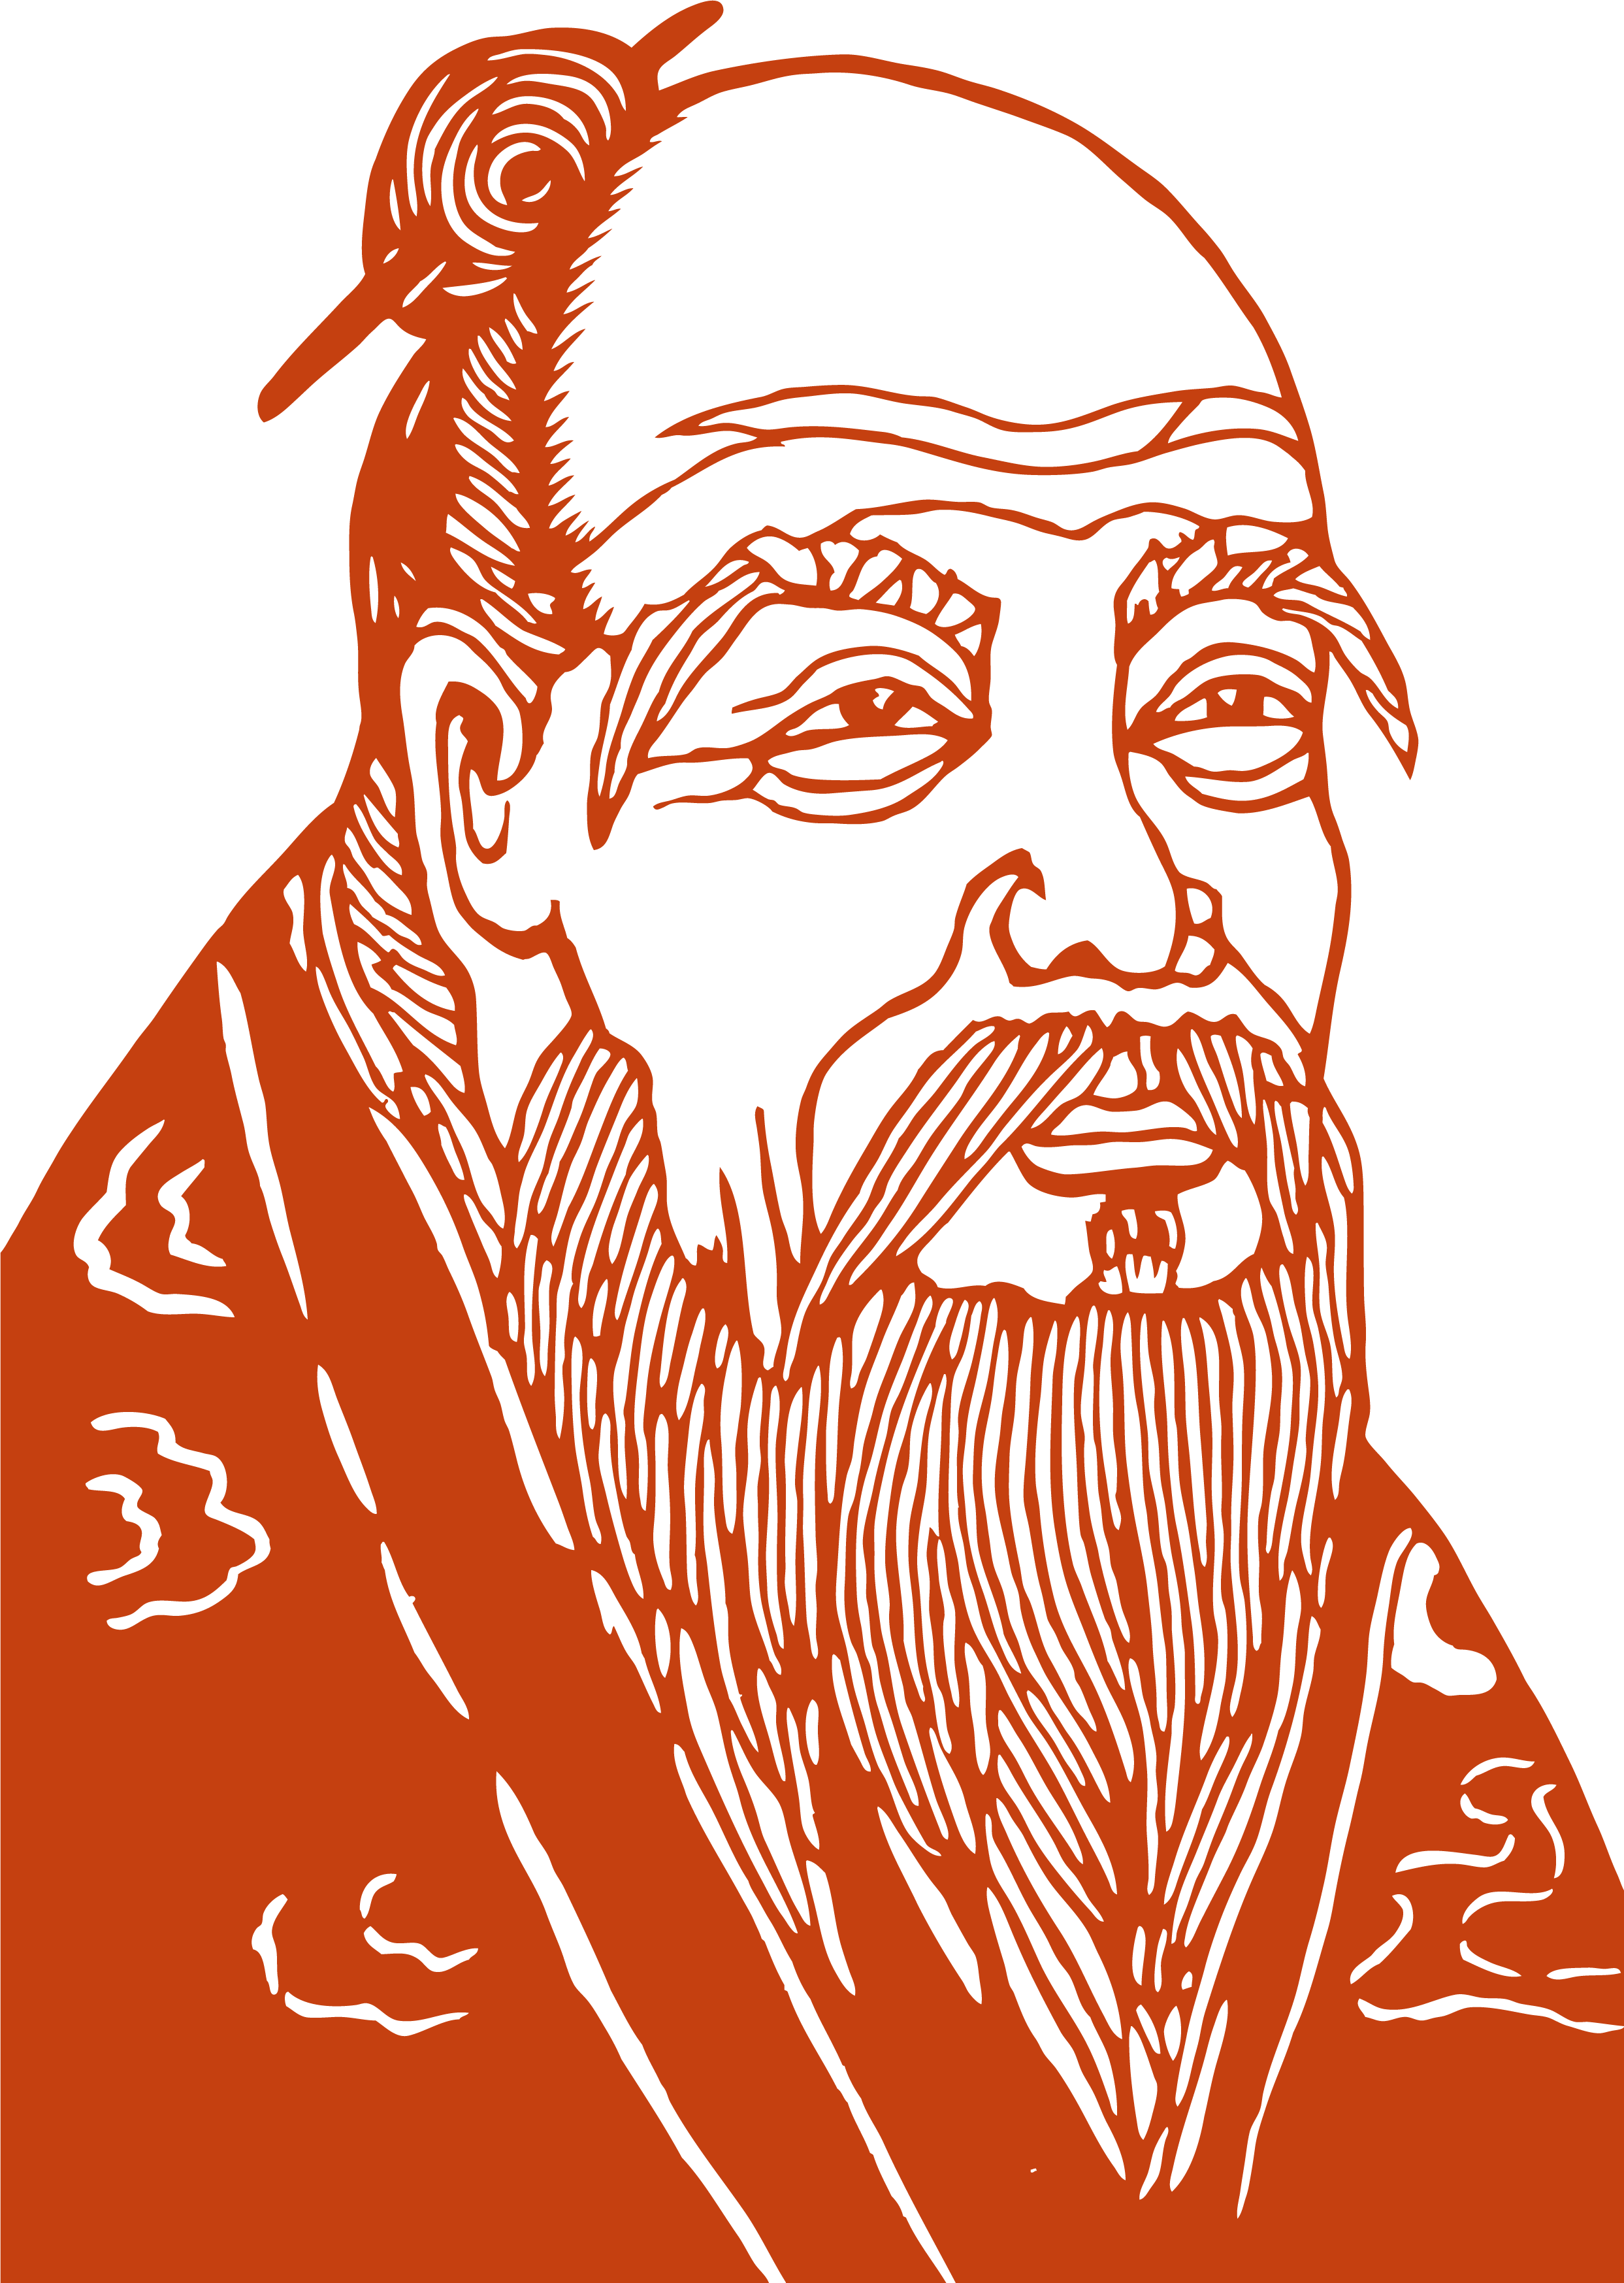 Laozi (Lao-Tzu) - ancient Chinese philosopher (circa 400 - 600 BCE)and author of Dao De Jing (Tao Te Ching)